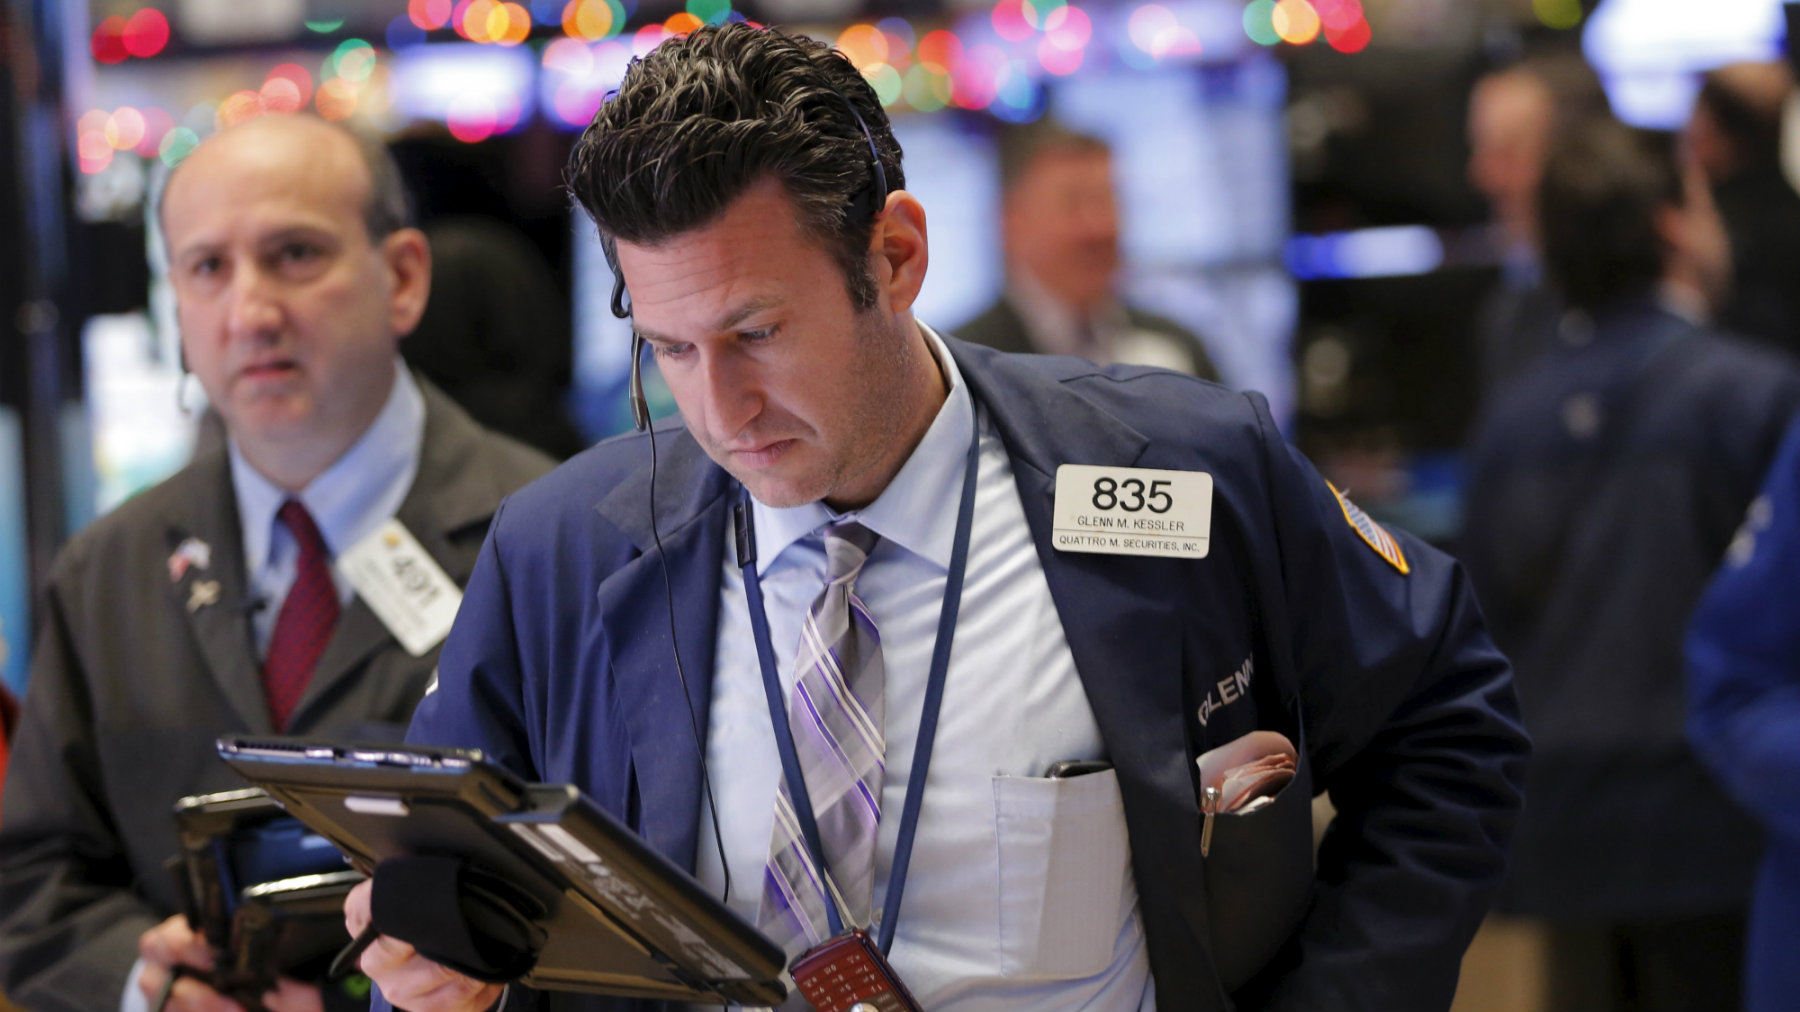 A trader works on the floor of the New York Stock Exchange (NYSE) shortly after the opening bell in New York December 21, 2015. REUTERS/Lucas Jackson